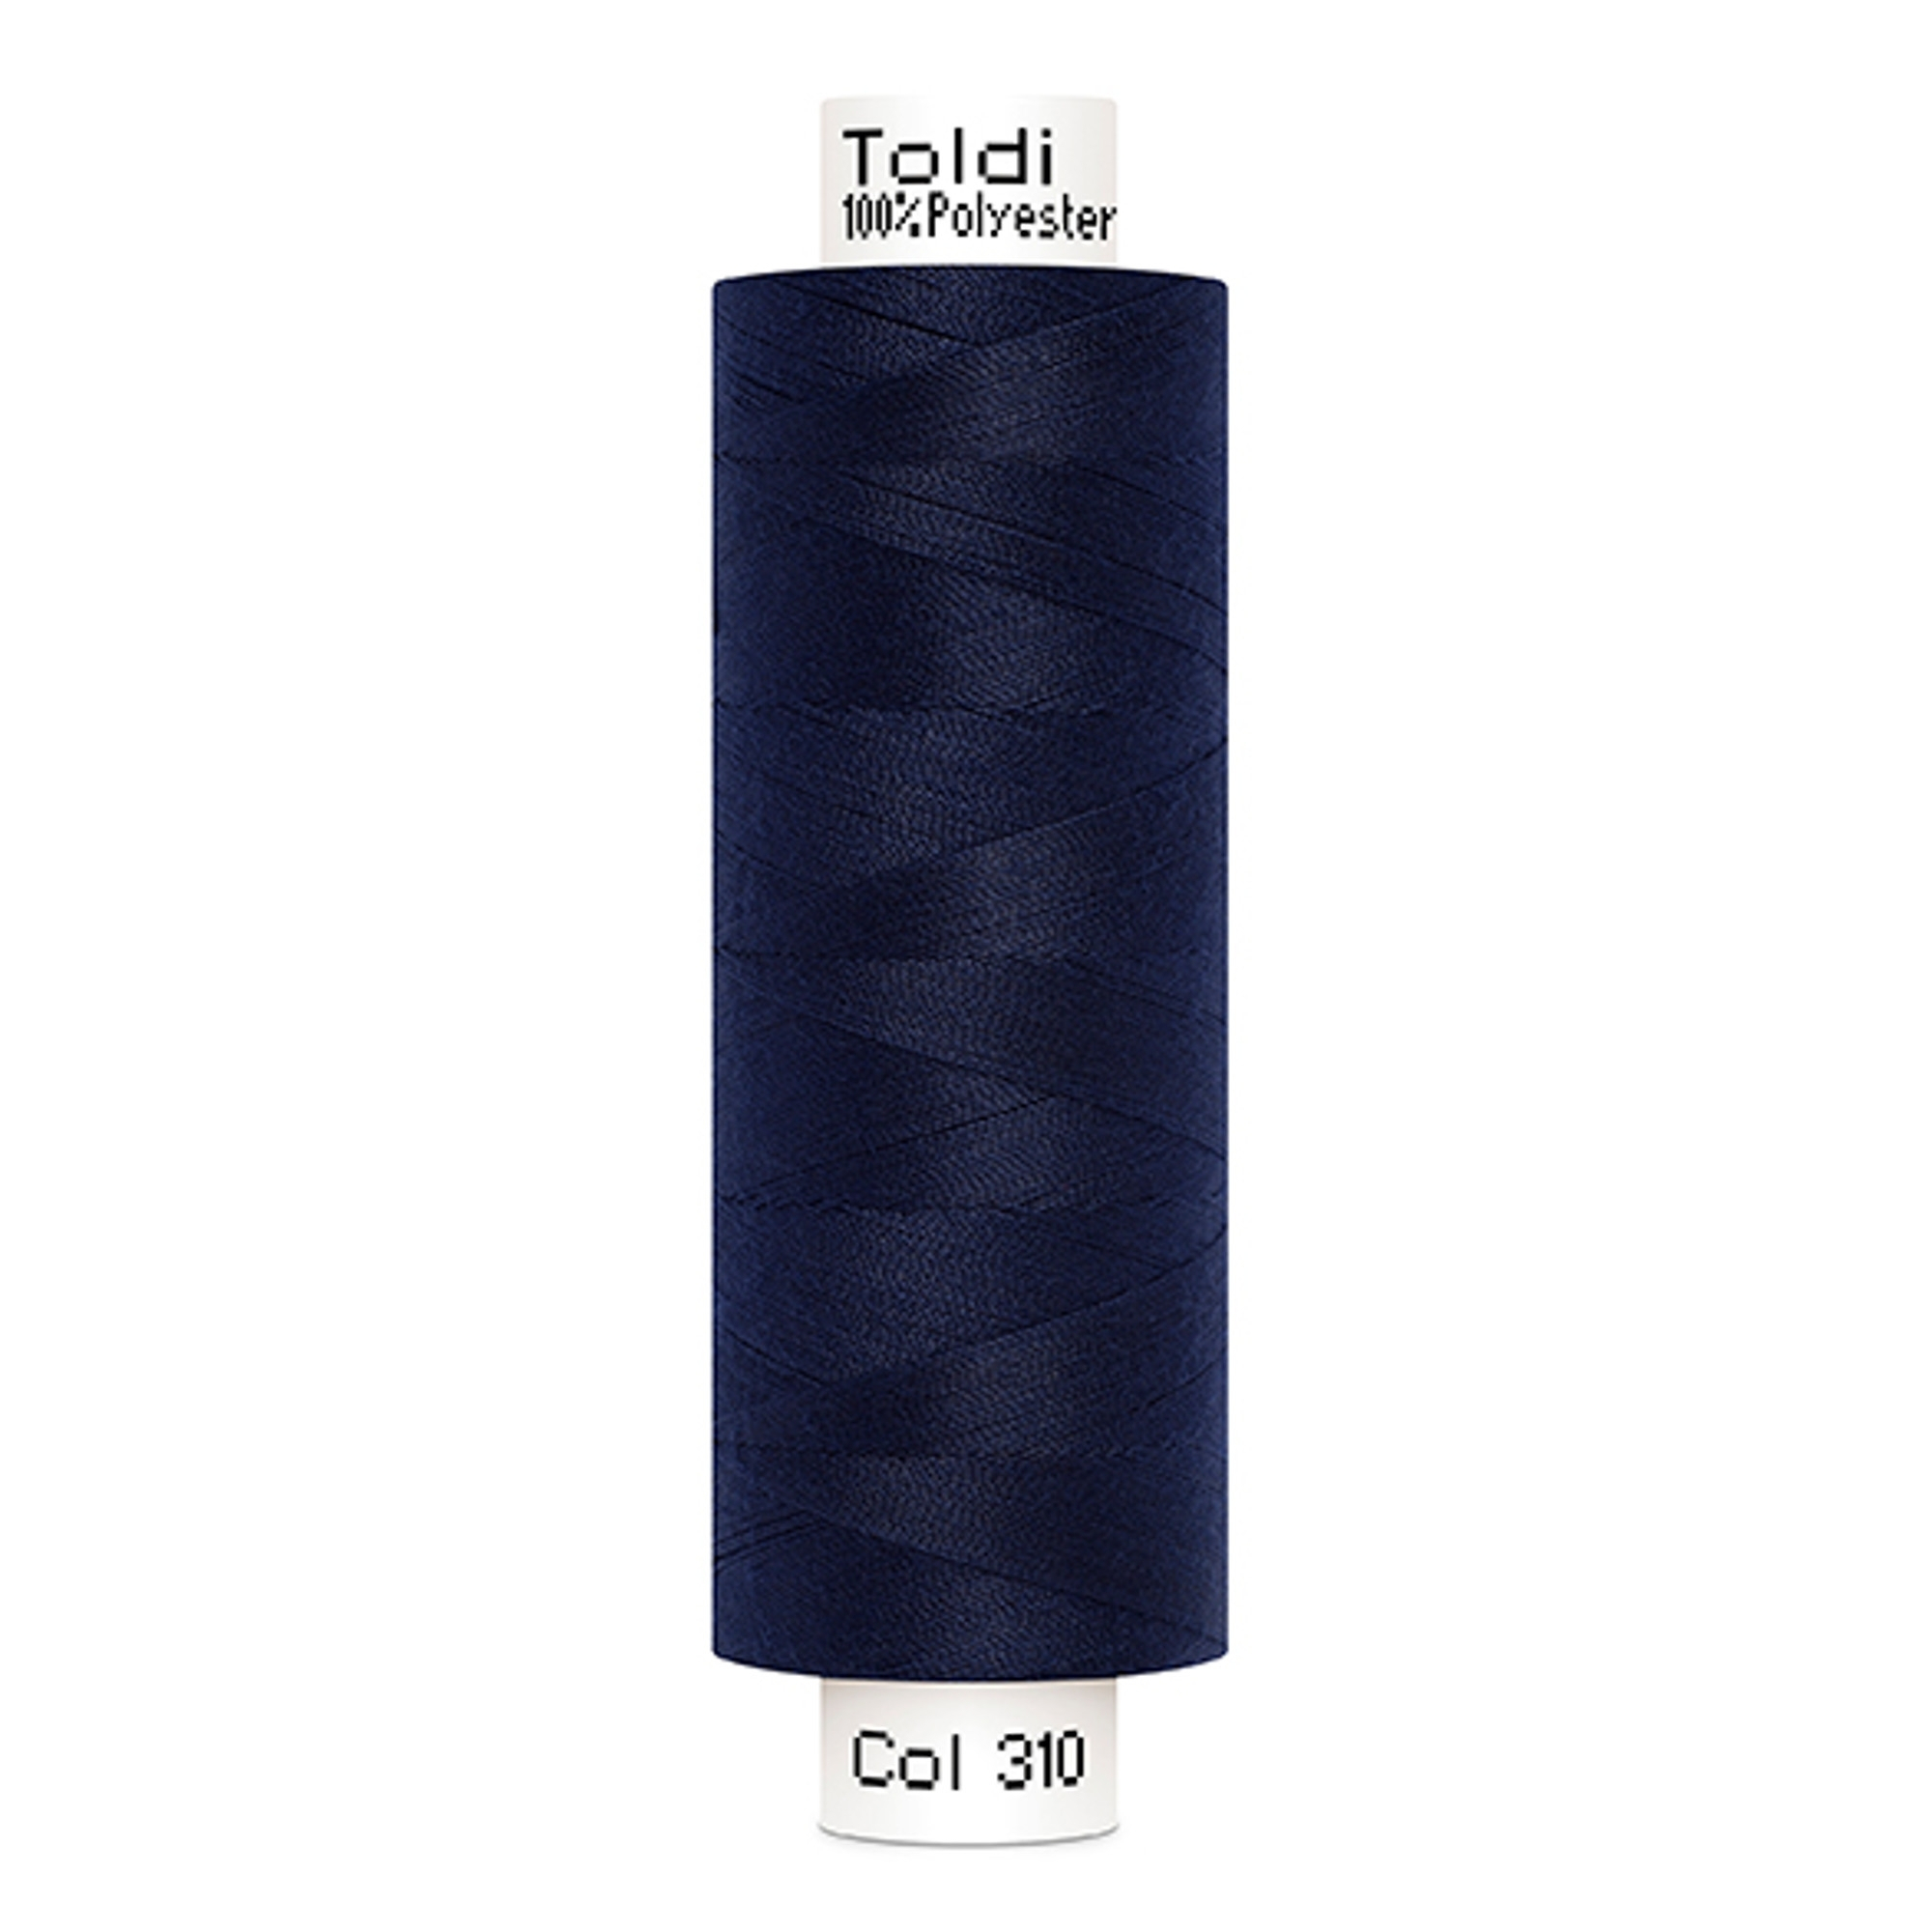 Gütermann Toldi Sewing Thread, 500 m dark blue | 707589-310 |